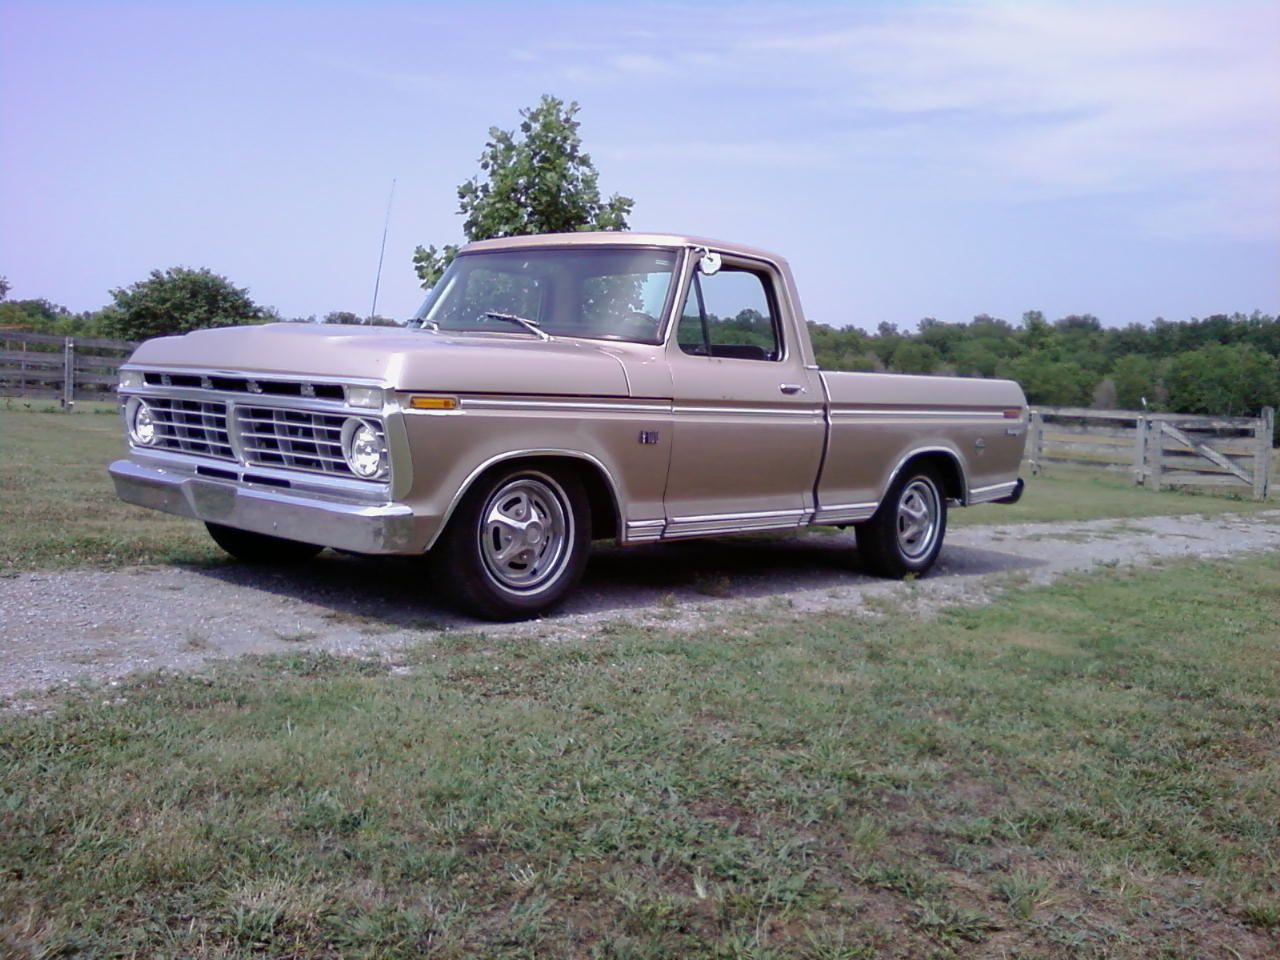 1955 ford f100 trucks for sale used cars on oodle autos post - Lets See Lowered Attitude Dents Here Page 32 Ford Truck Enthusiasts Forums